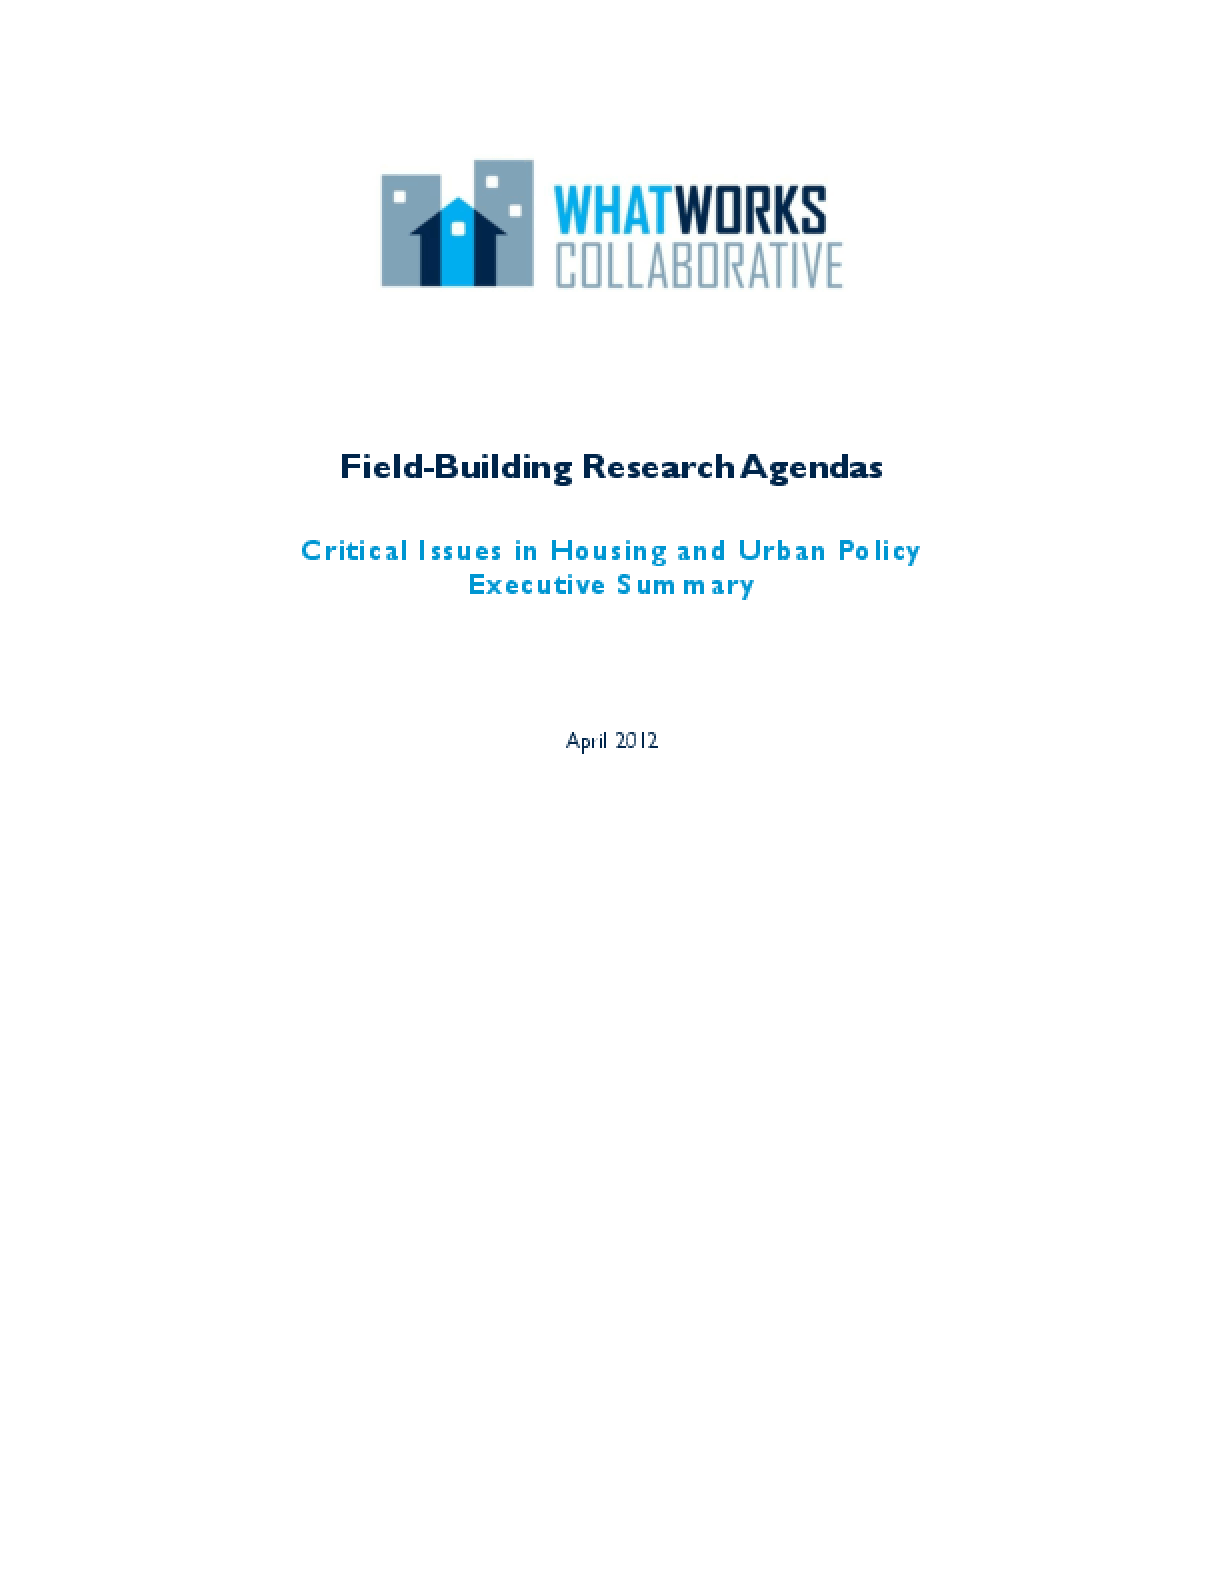 Field-Building Research Agendas: Critical Issues in Housing and Urban Policy, Executive Summary